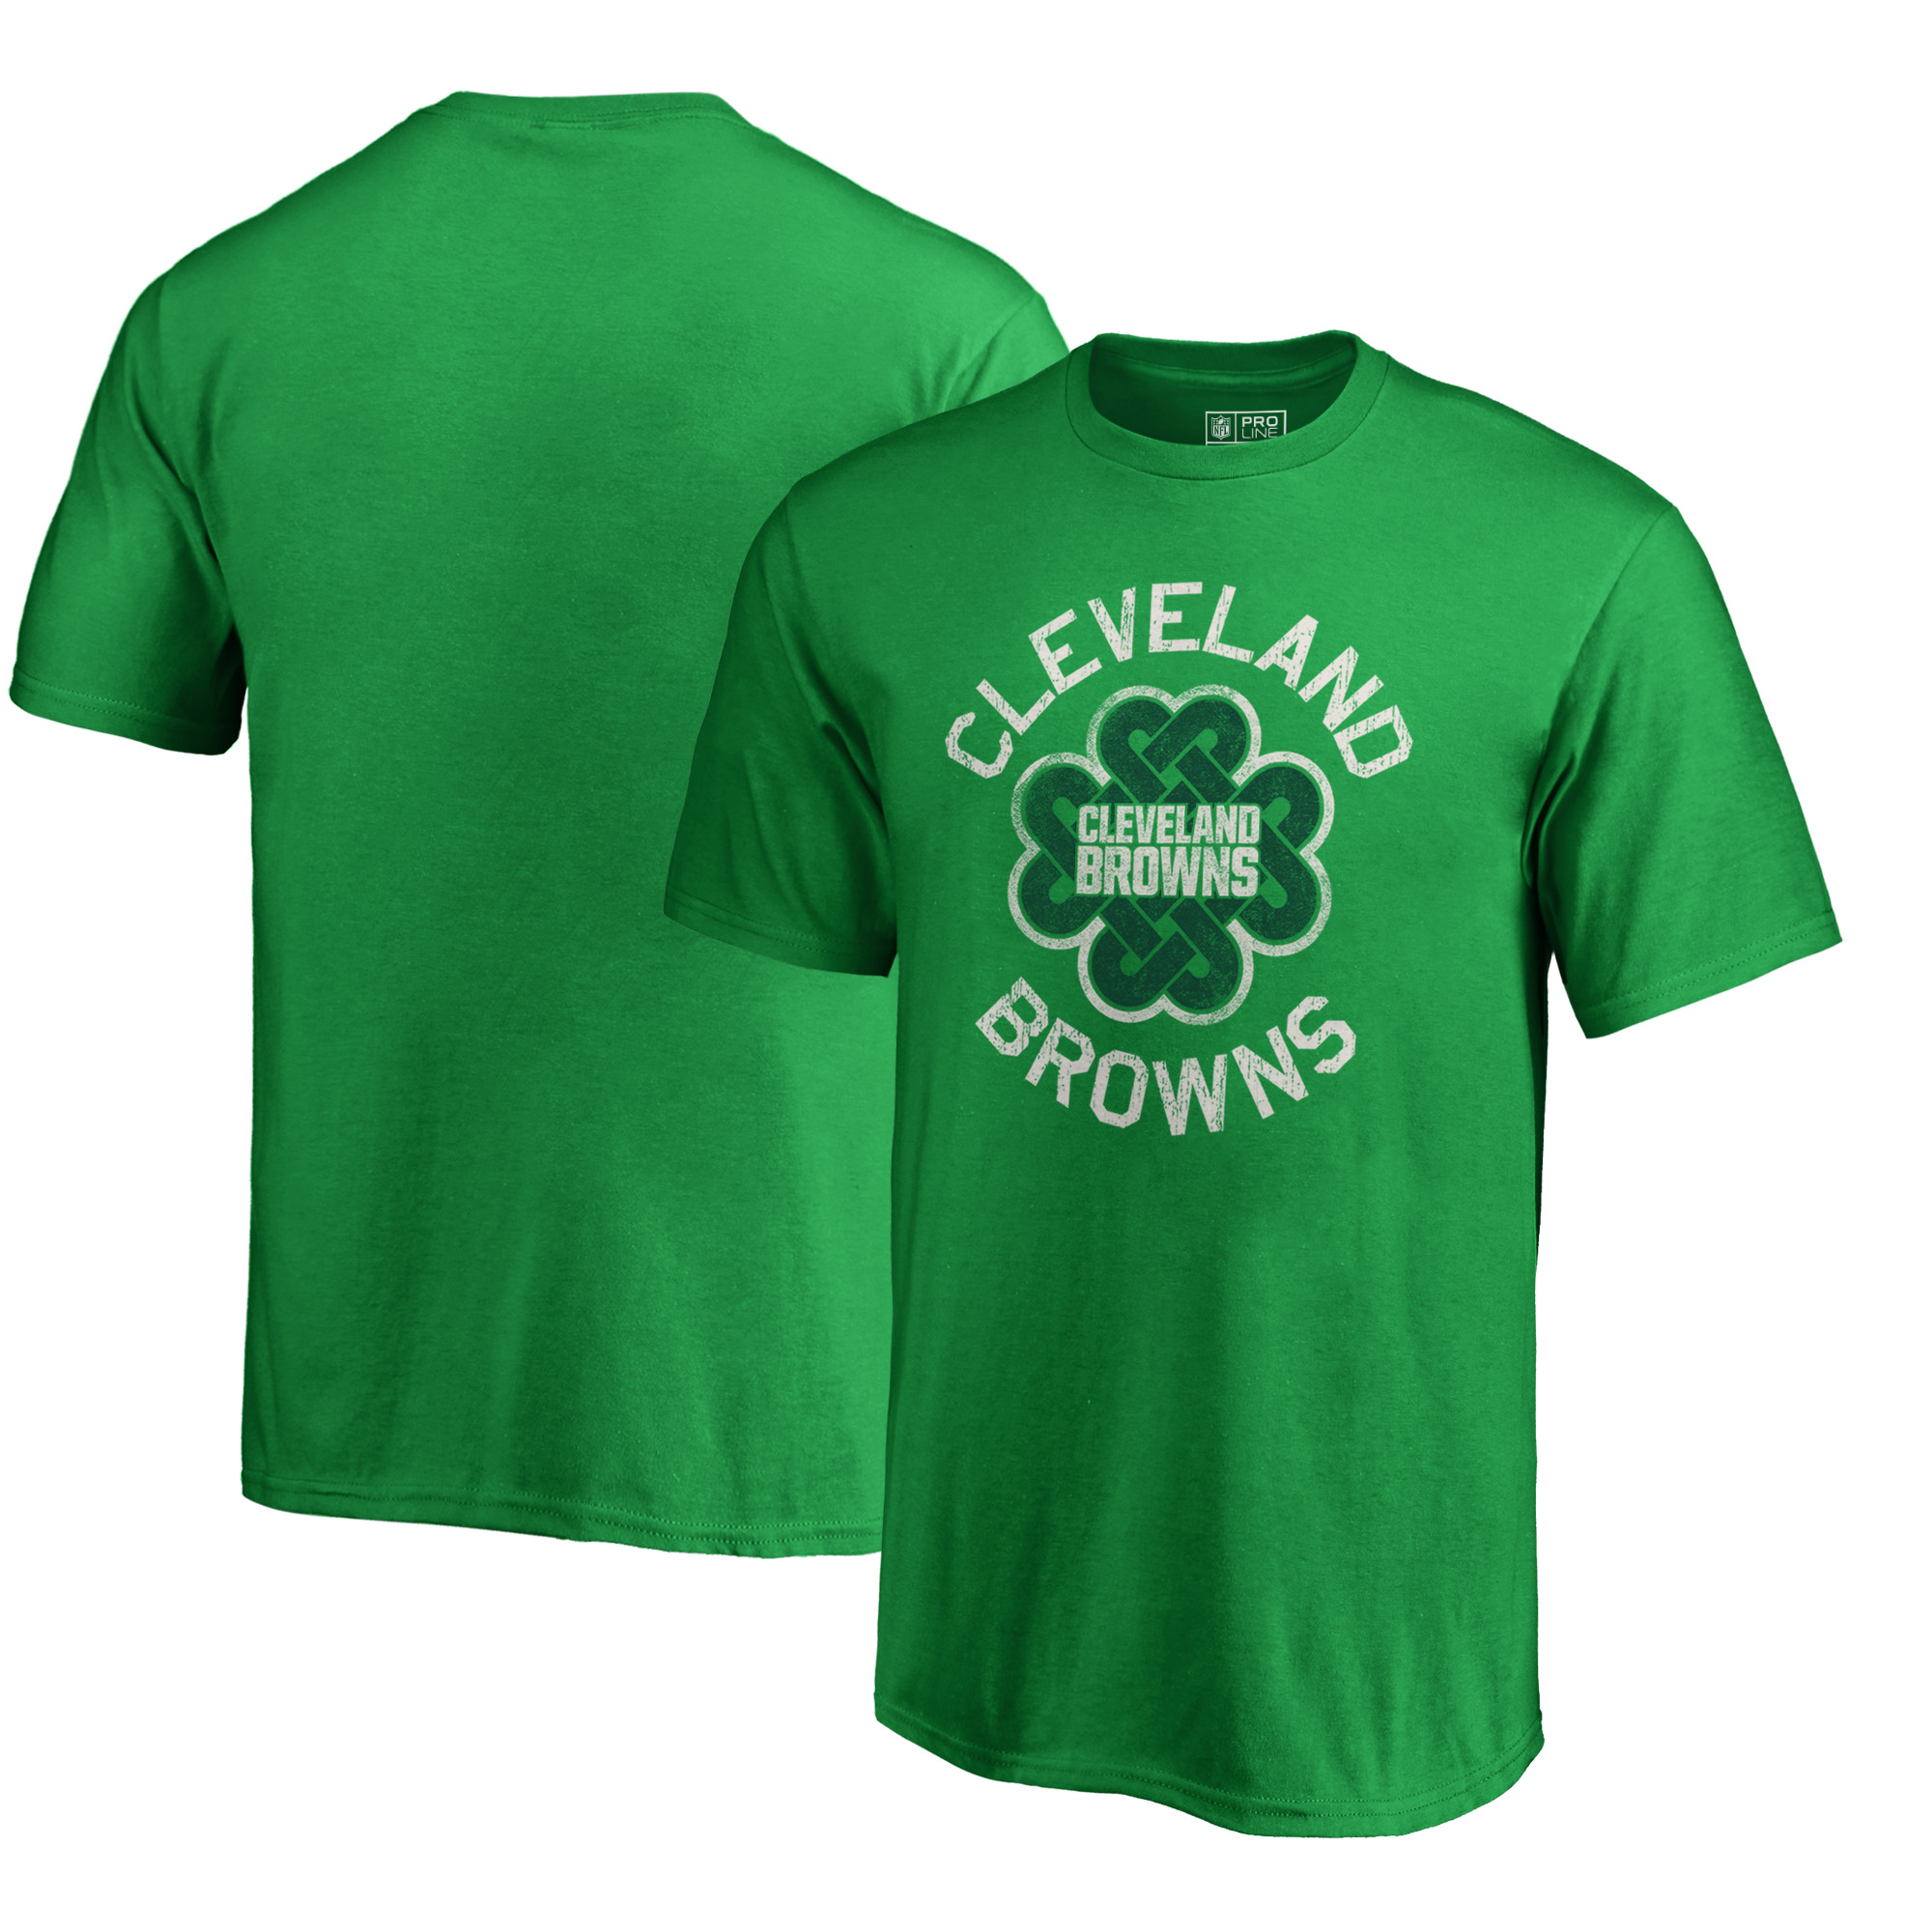 Cleveland Browns NFL Pro Line by Fanatics Branded Youth St. Patrick's Day Luck Tradition T-Shirt - Kelly Green